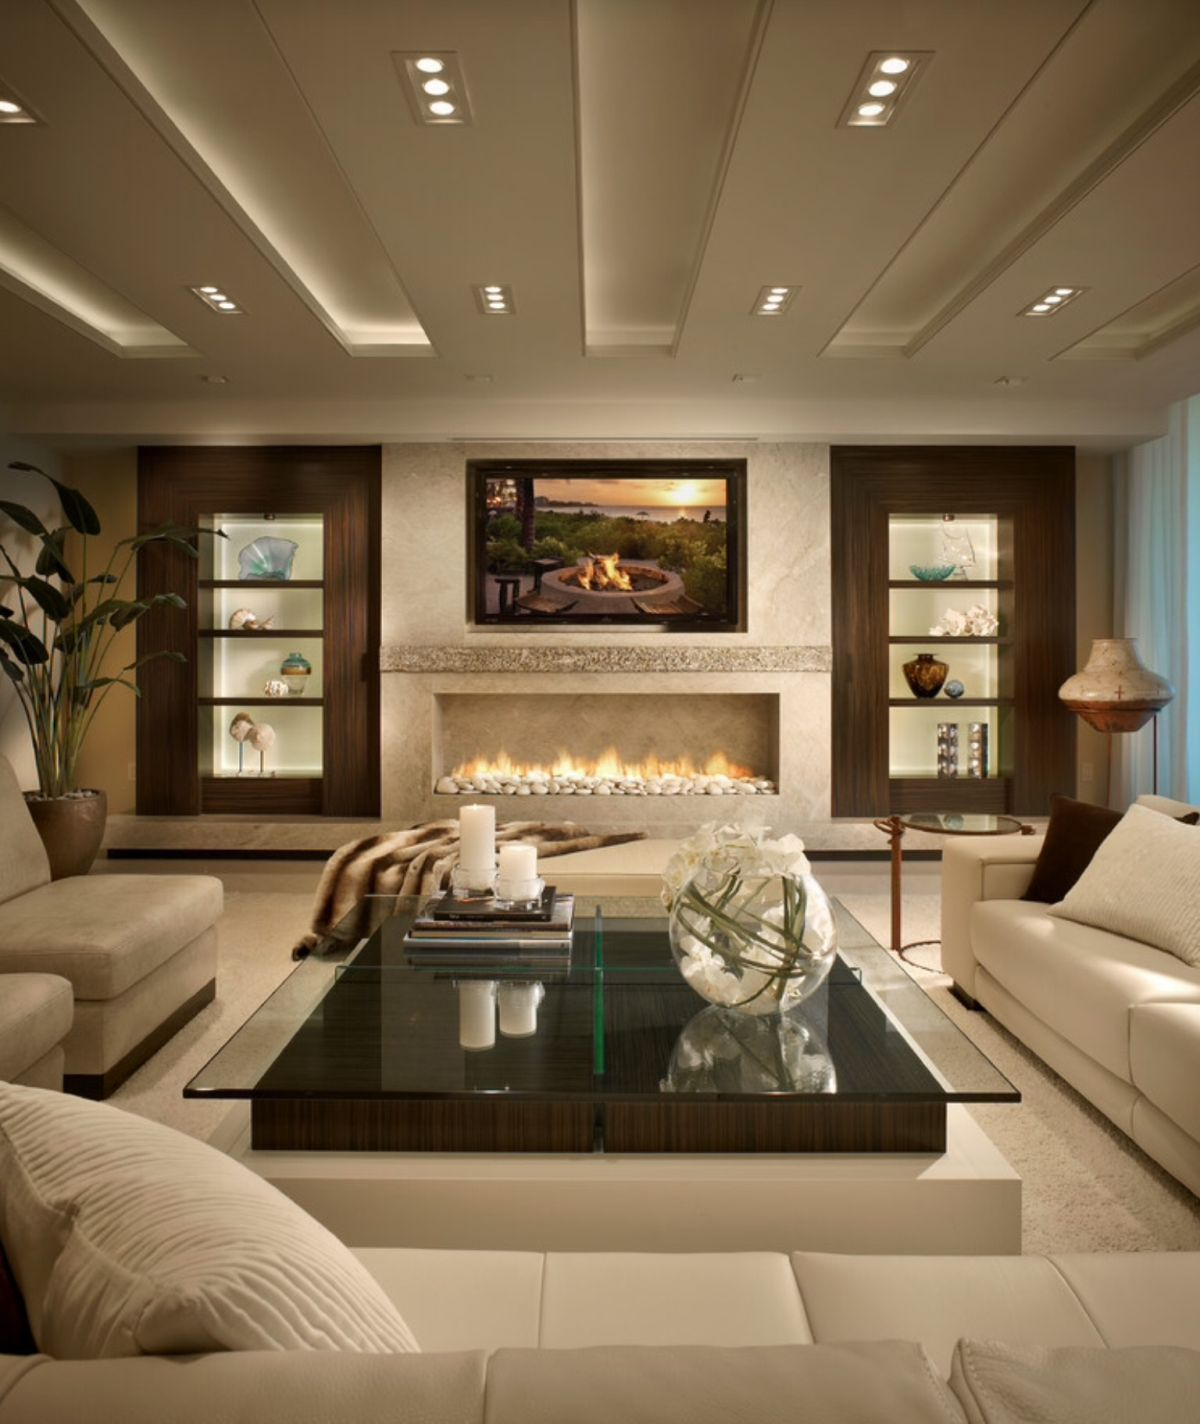 Fireplace Design Idea 25 Stunning Fireplace Ideas To Steal